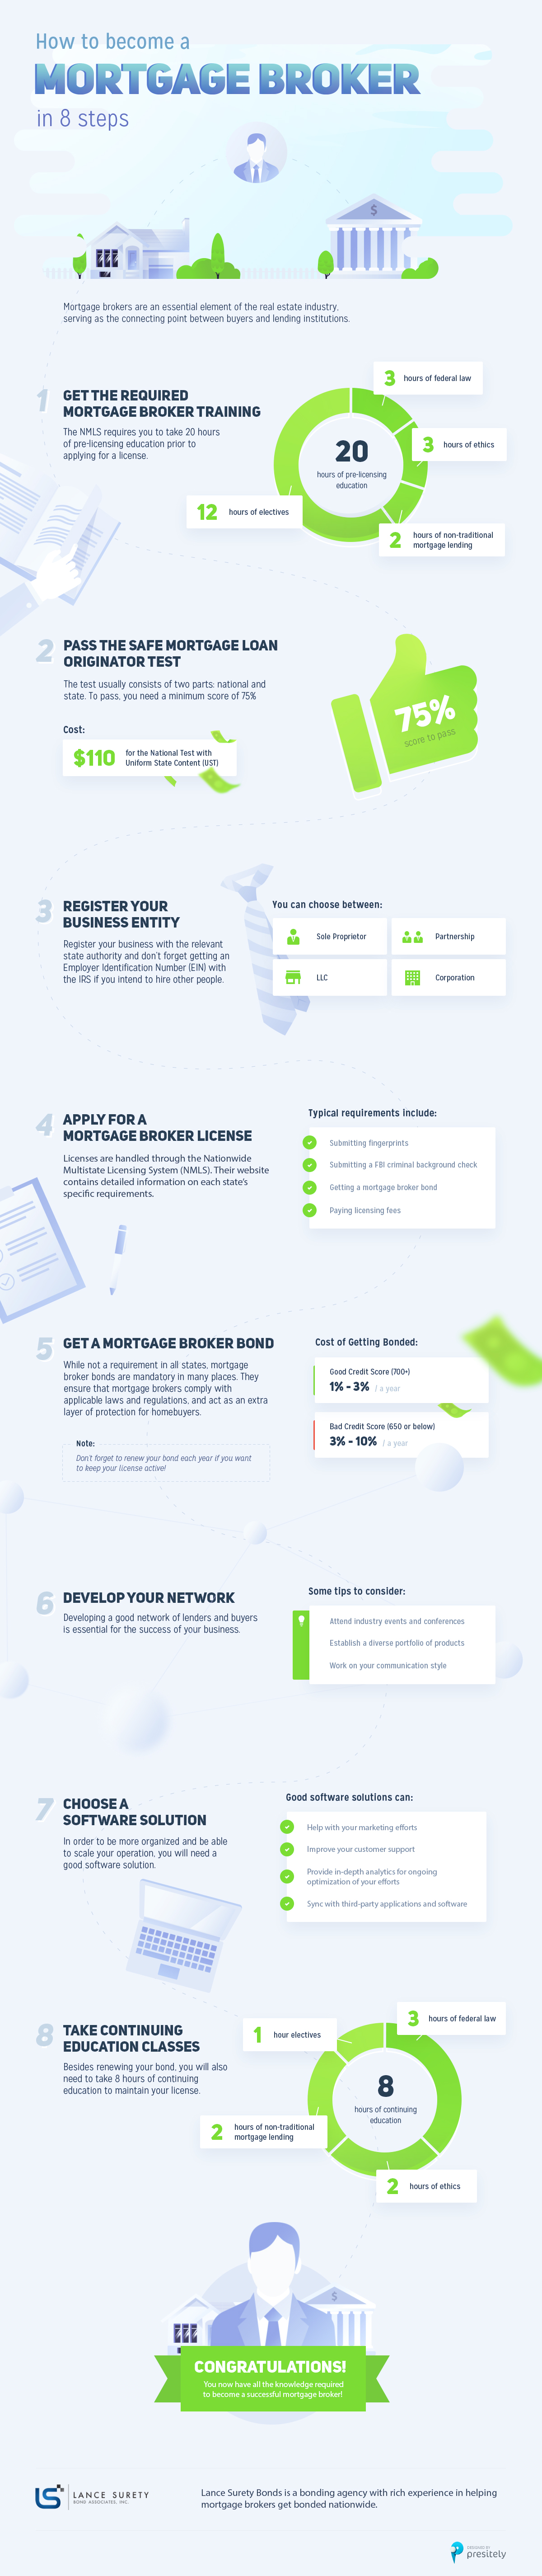 How to Be e a Mortgage Broker Now with Infographic